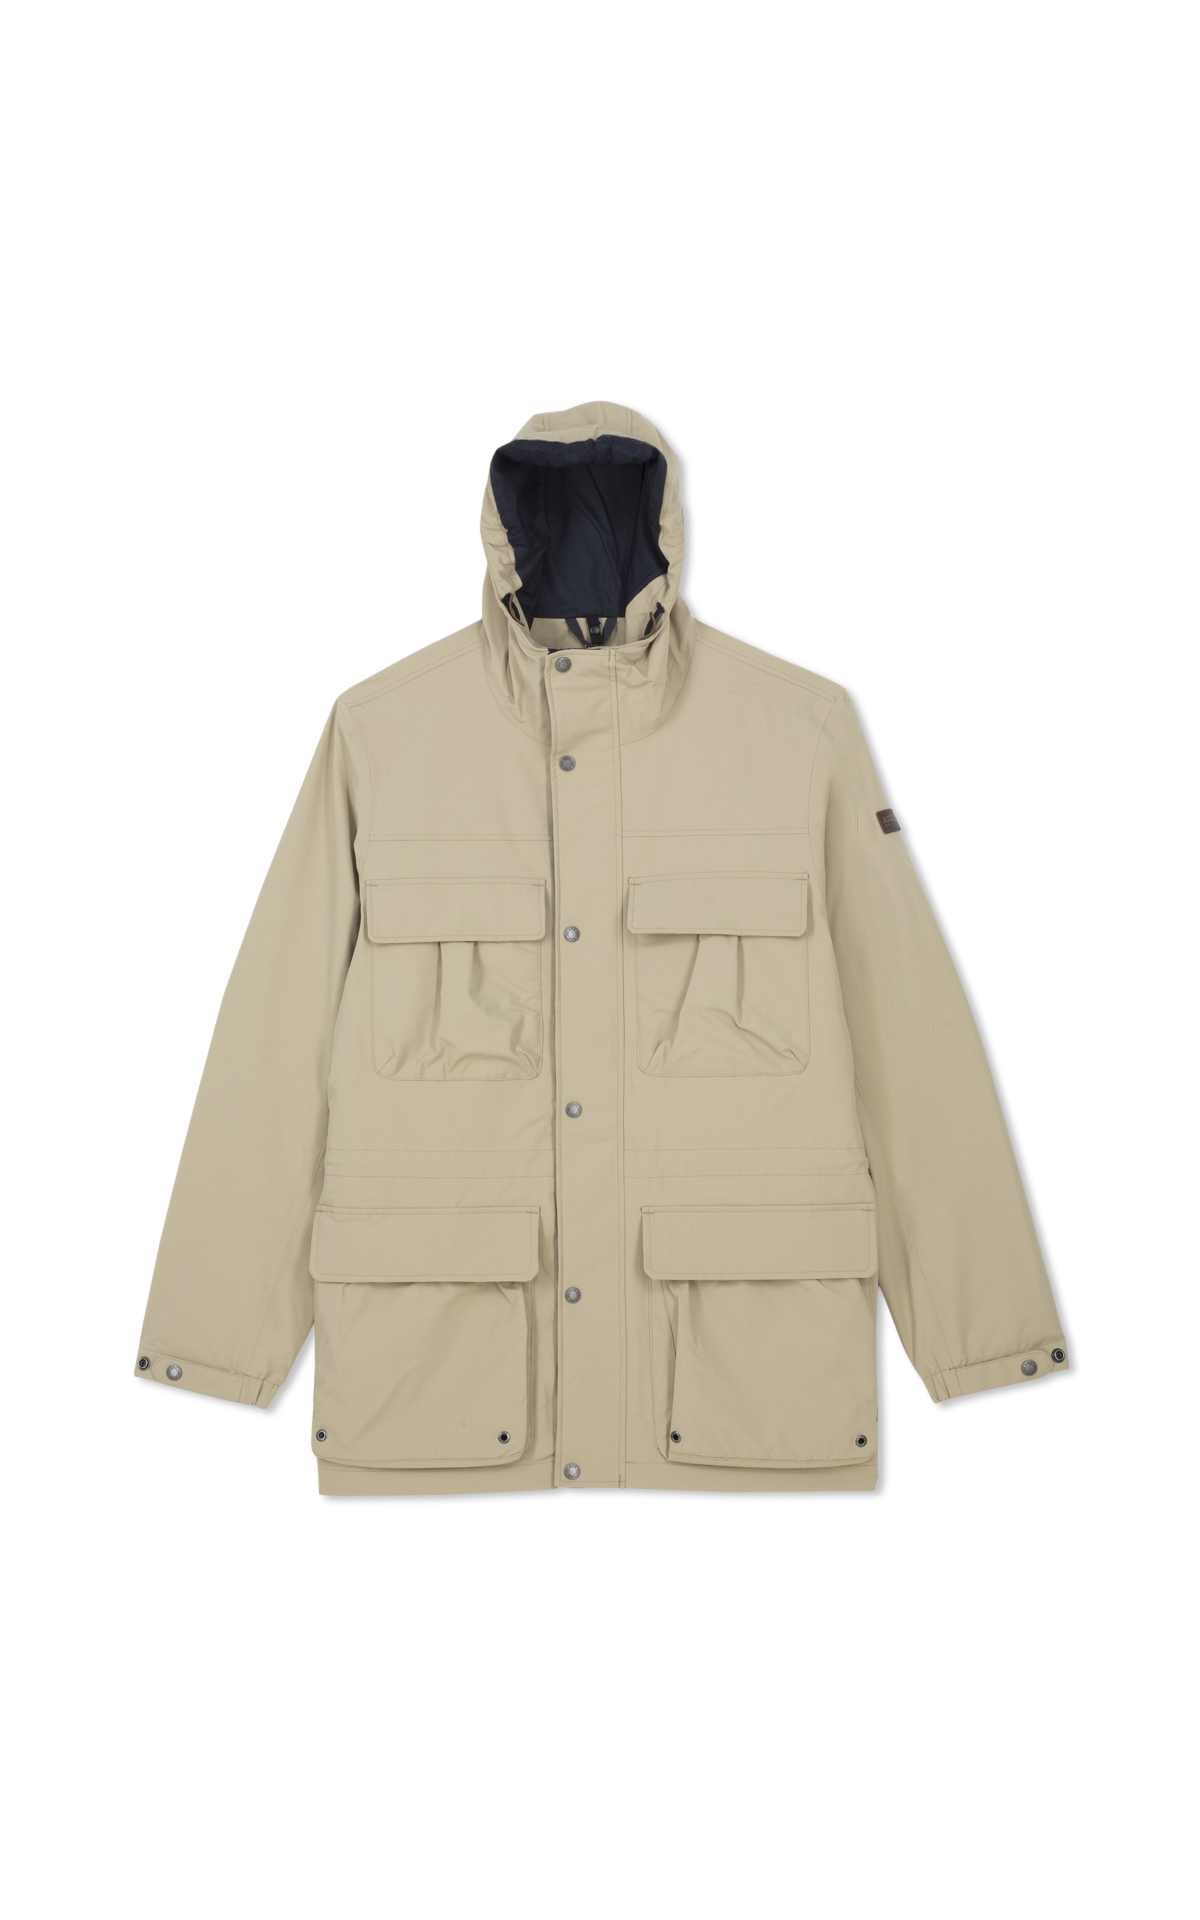 Aigle Men's raincoat